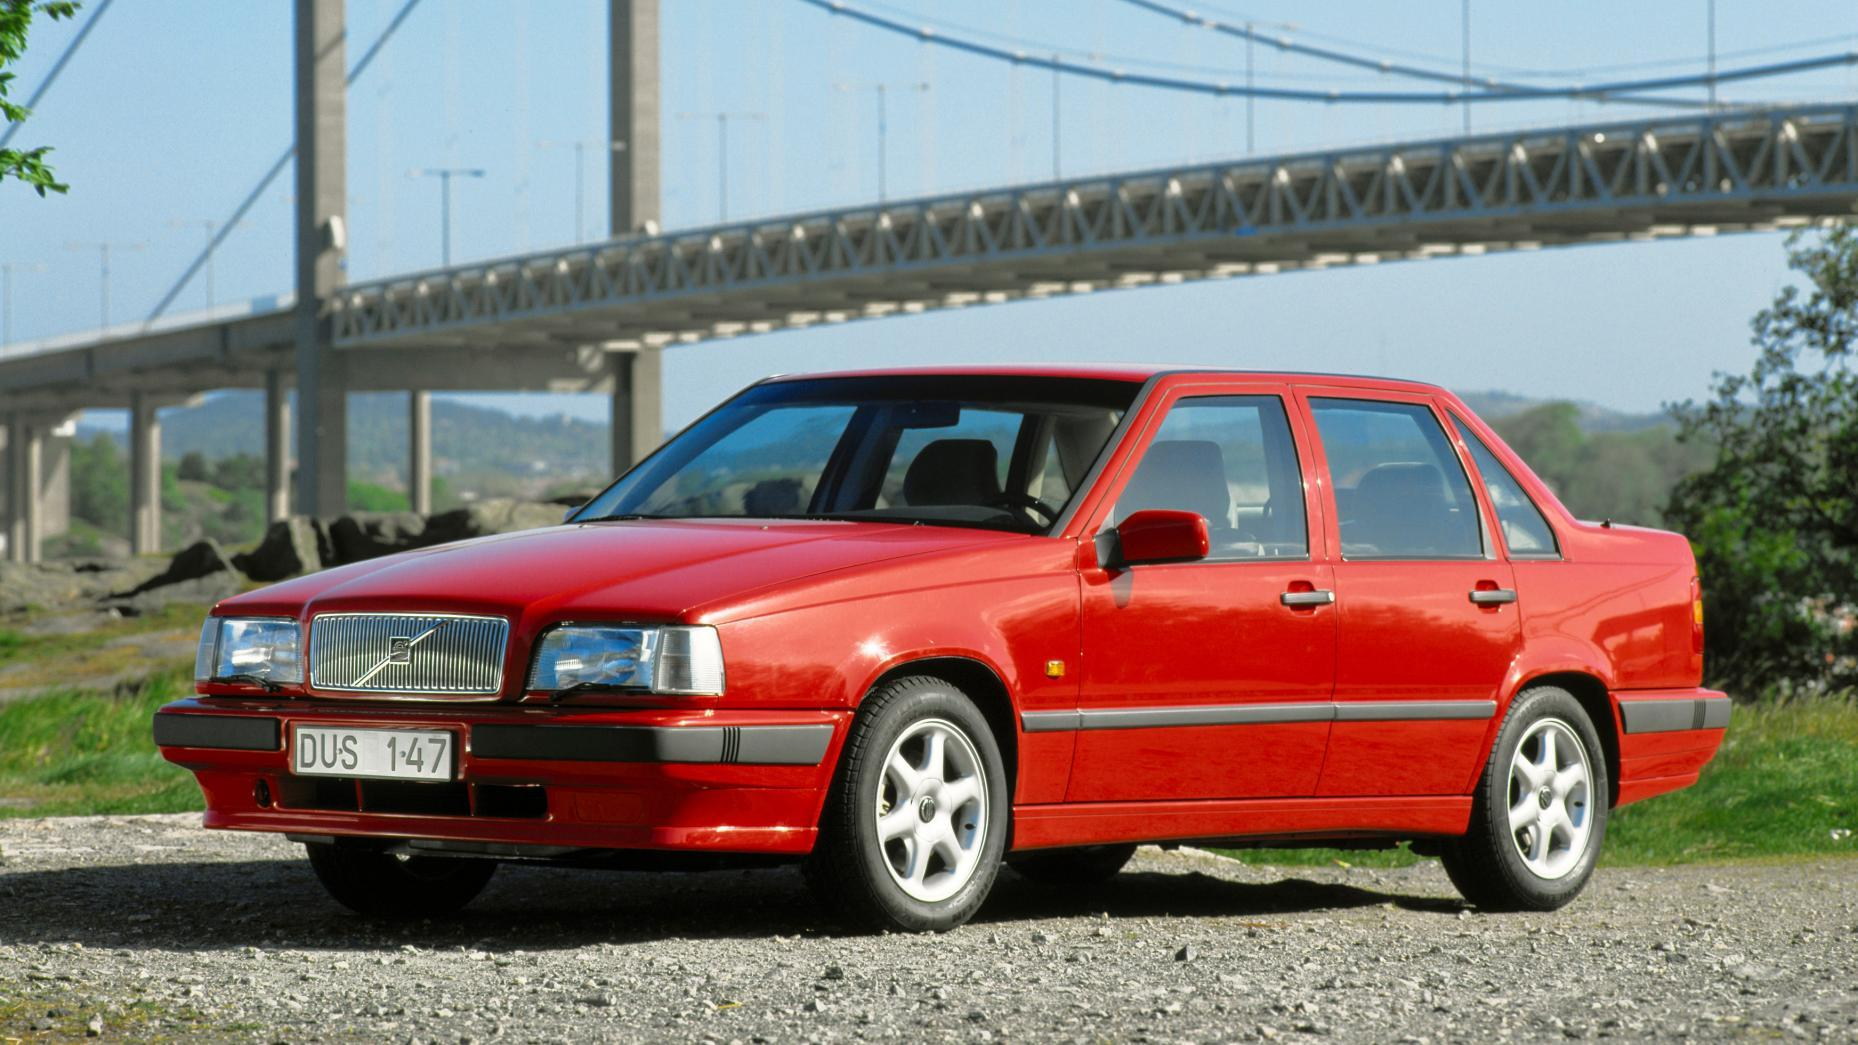 de volvo 850 is 25 jaar vier het met deze fotogalerij. Black Bedroom Furniture Sets. Home Design Ideas